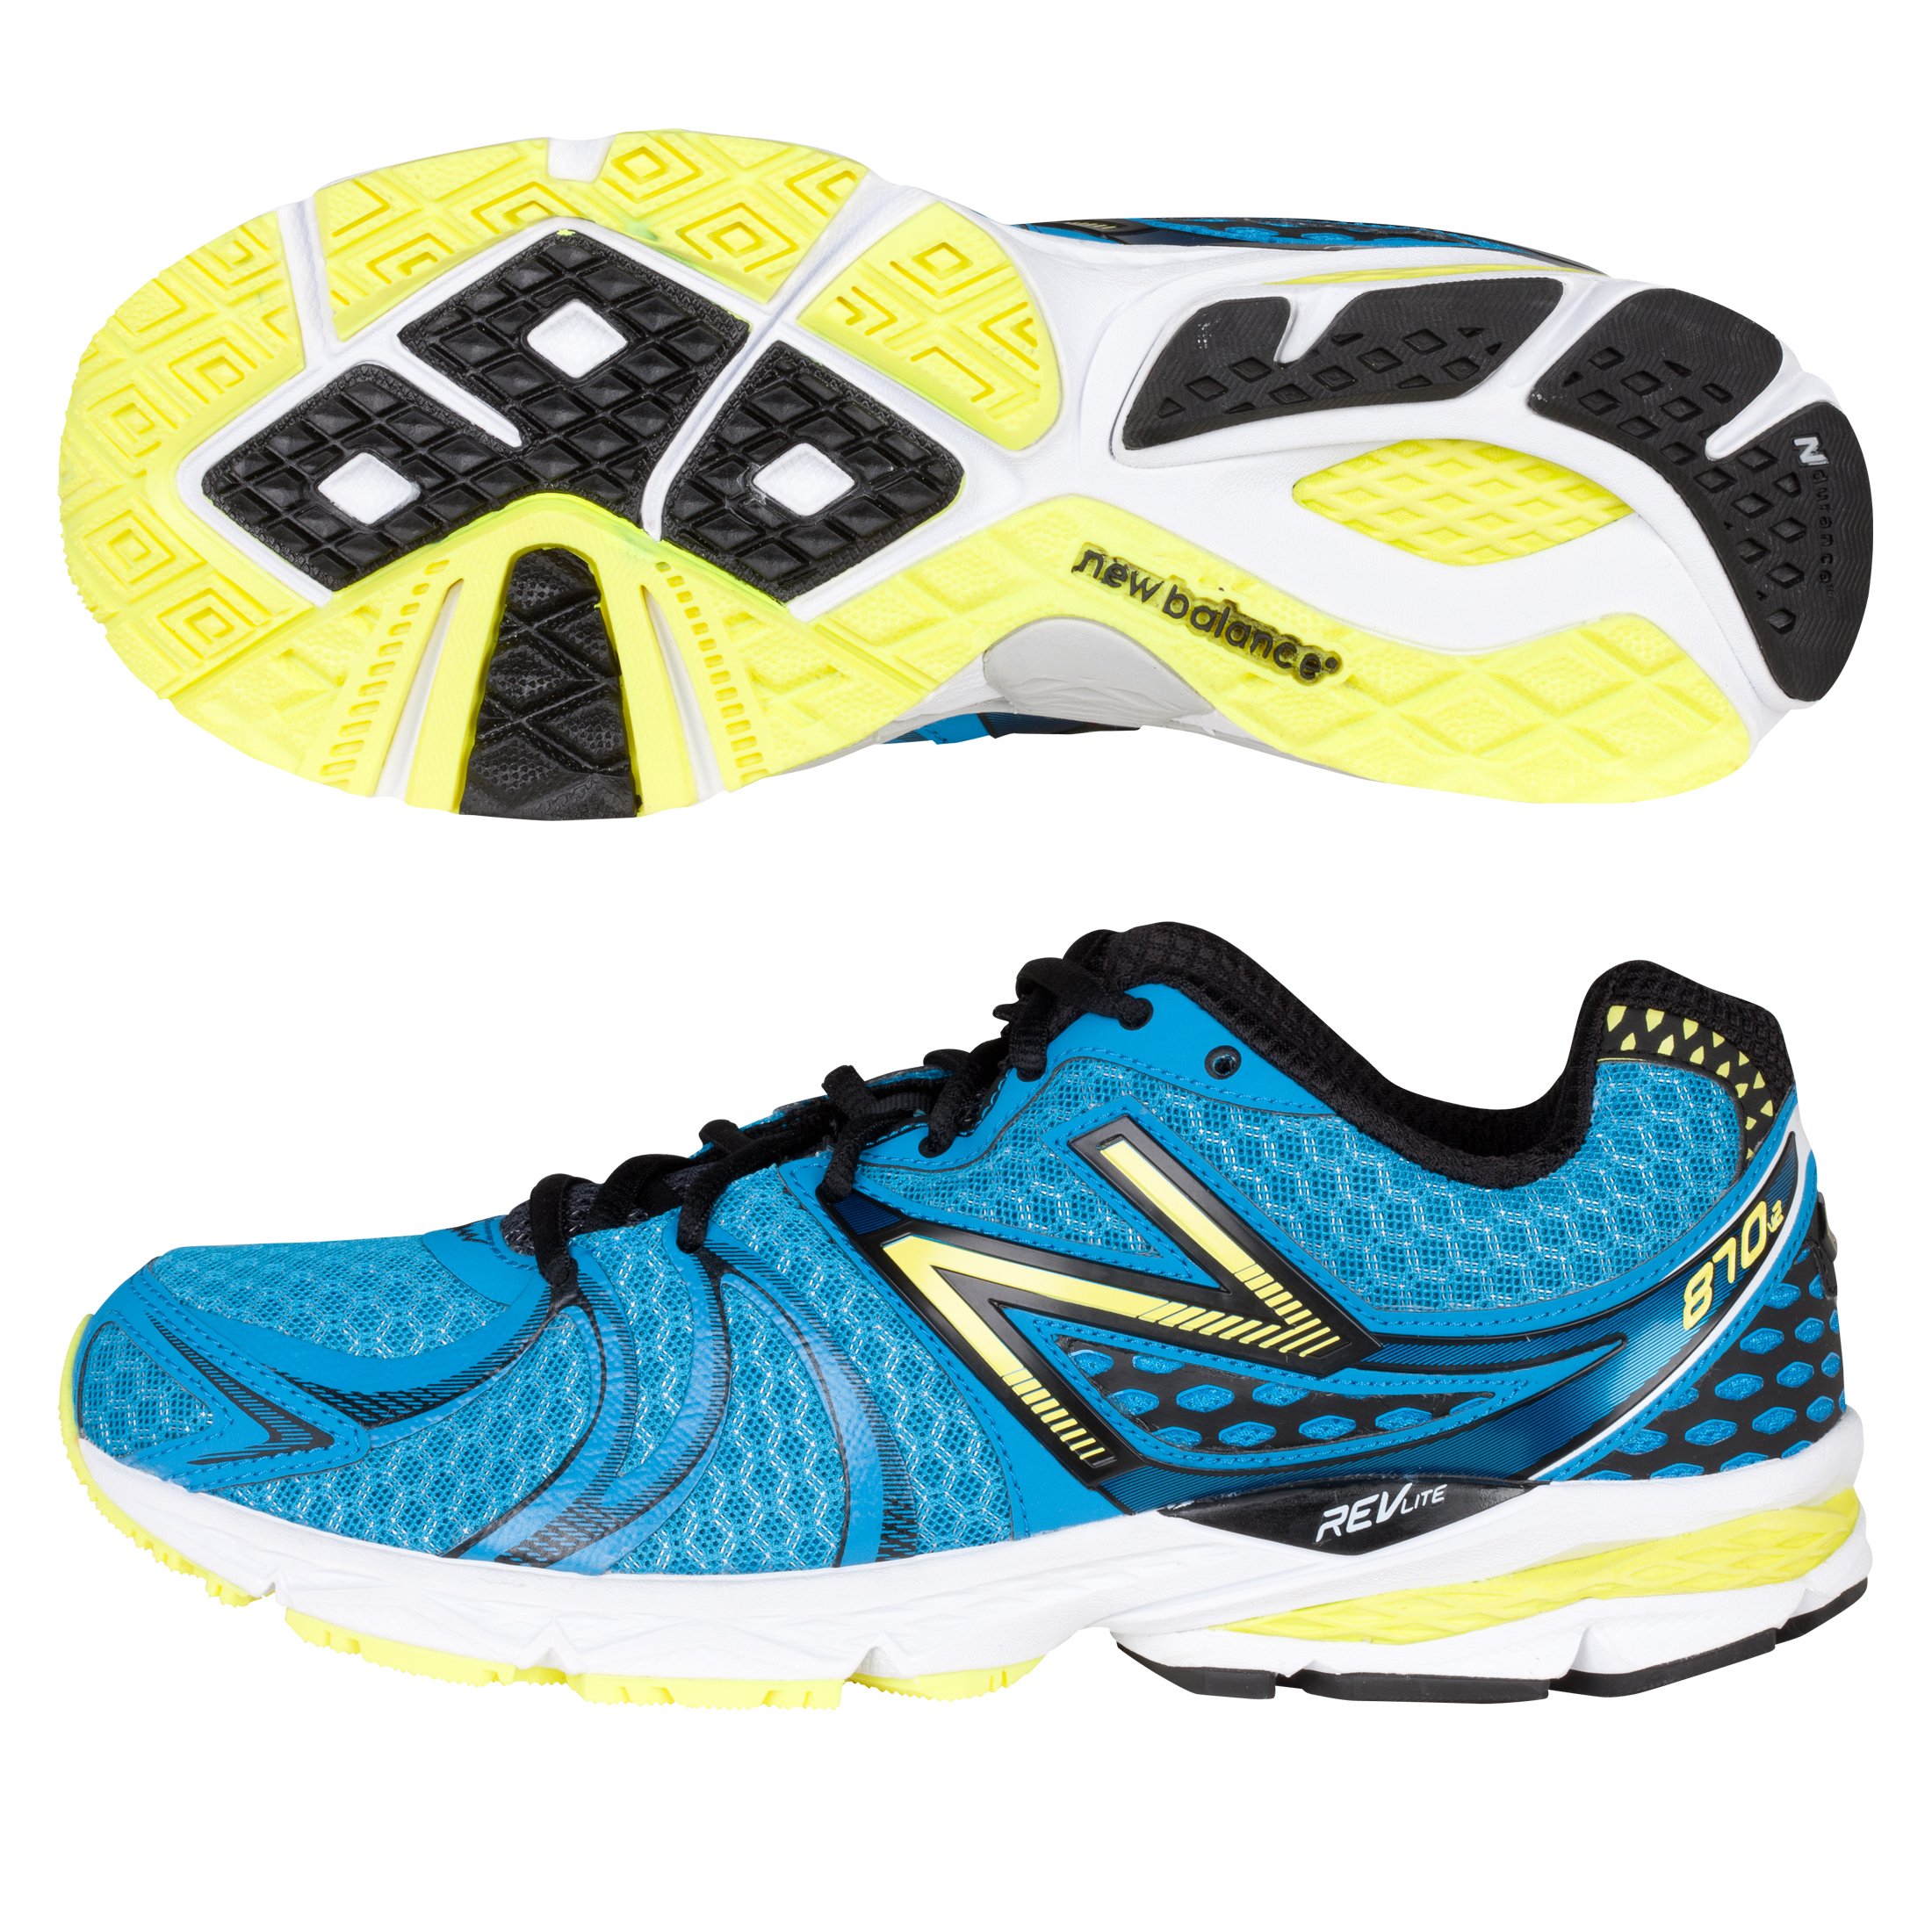 New Balance 870V2 Trainers - Blue/Yellow